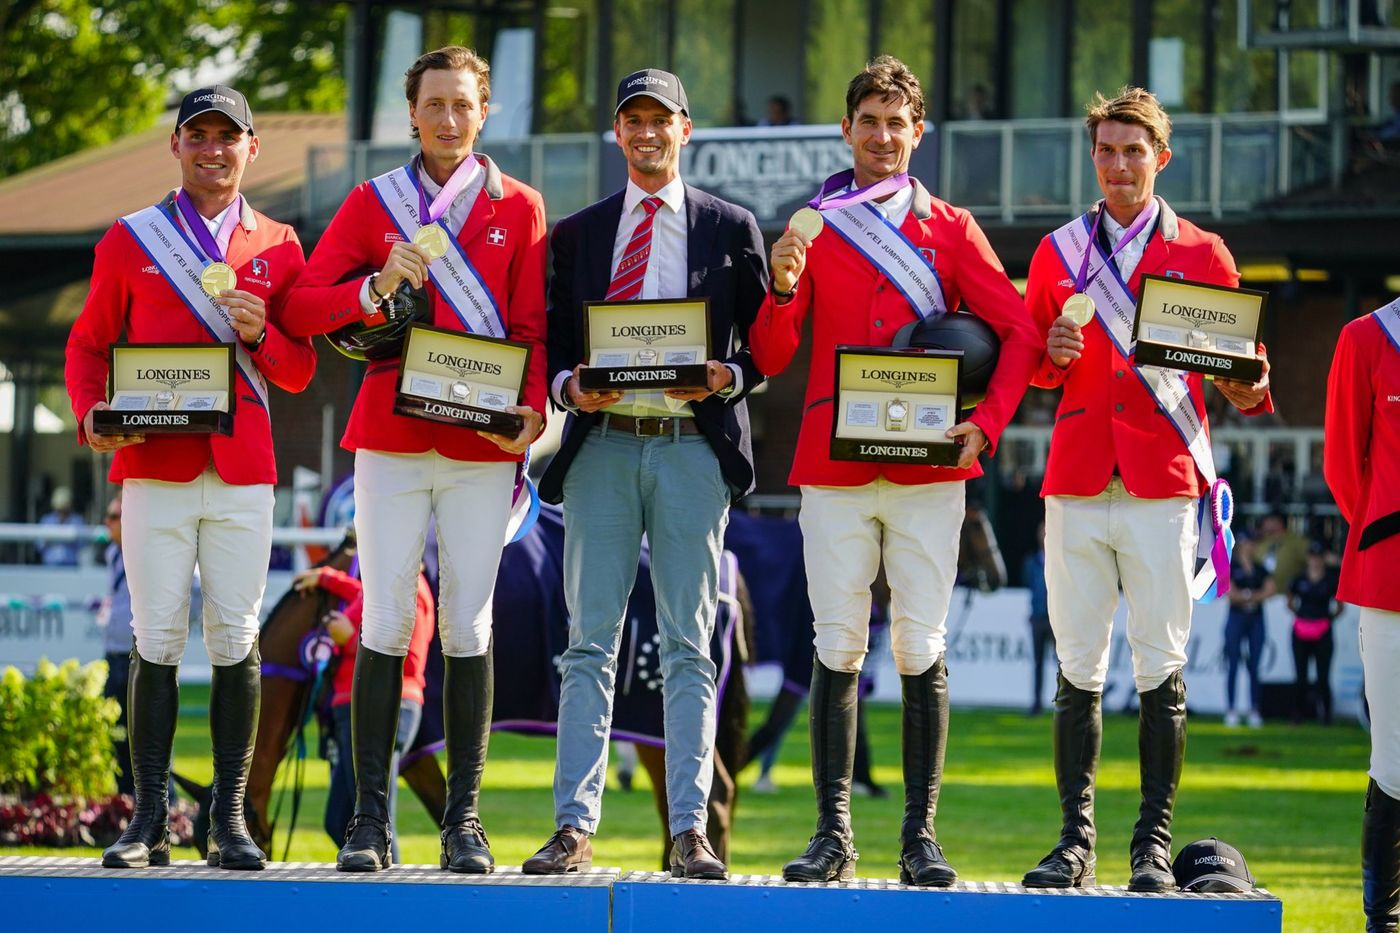 Longines Show Jumping Event: Europe's pre-eminent riders secured victories at the Longines FEI Jumping European Championship 2021   4